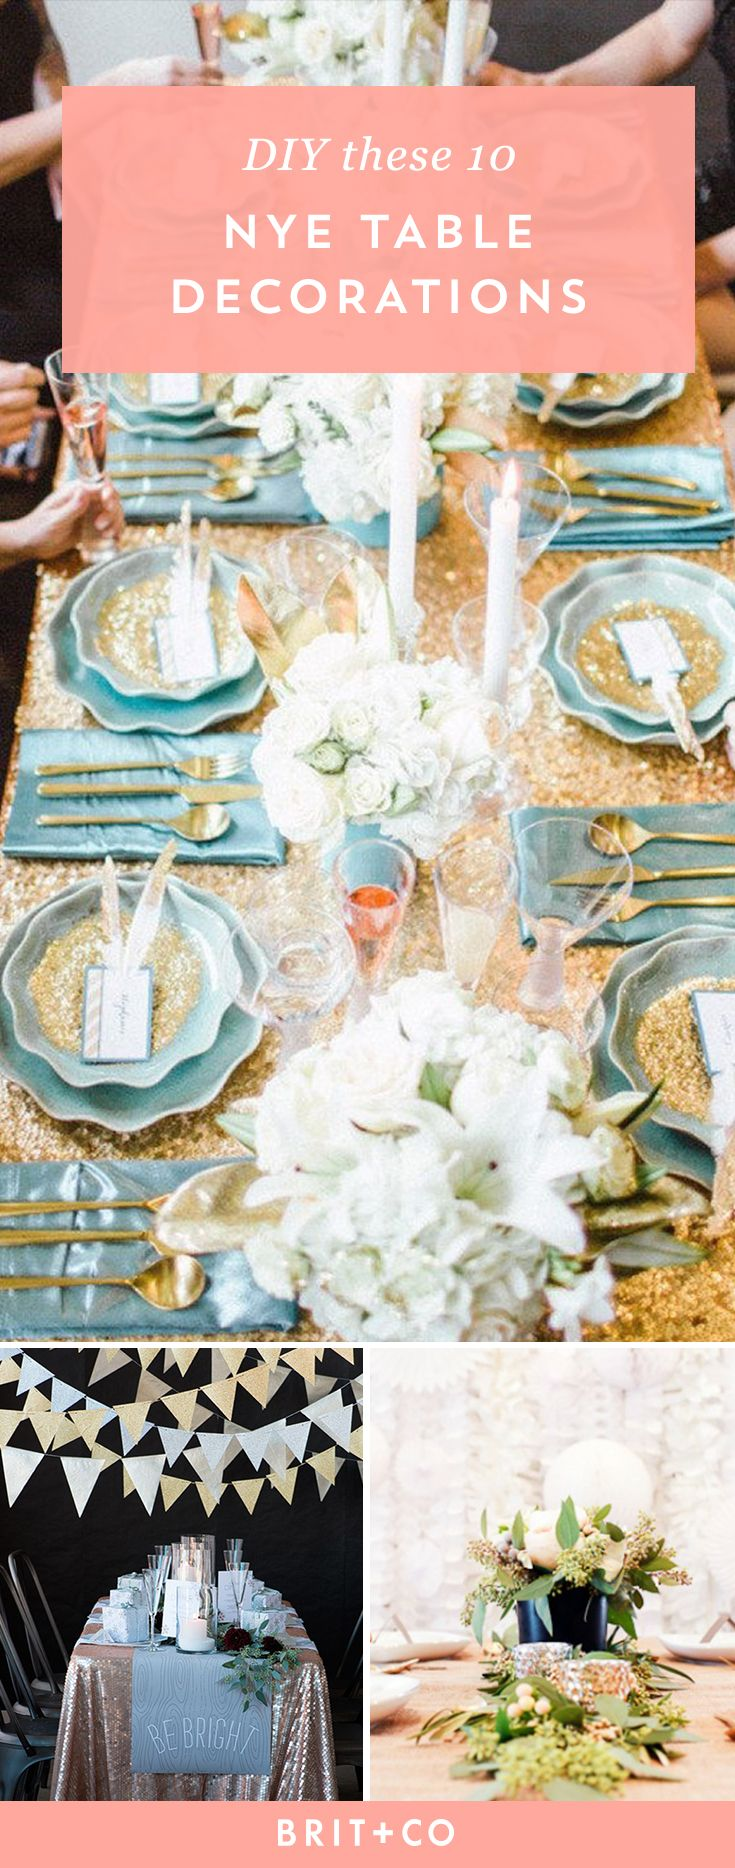 10 Ways To Trick Out Your NYE Table. New Years EveTable DecorationsParties Part 13